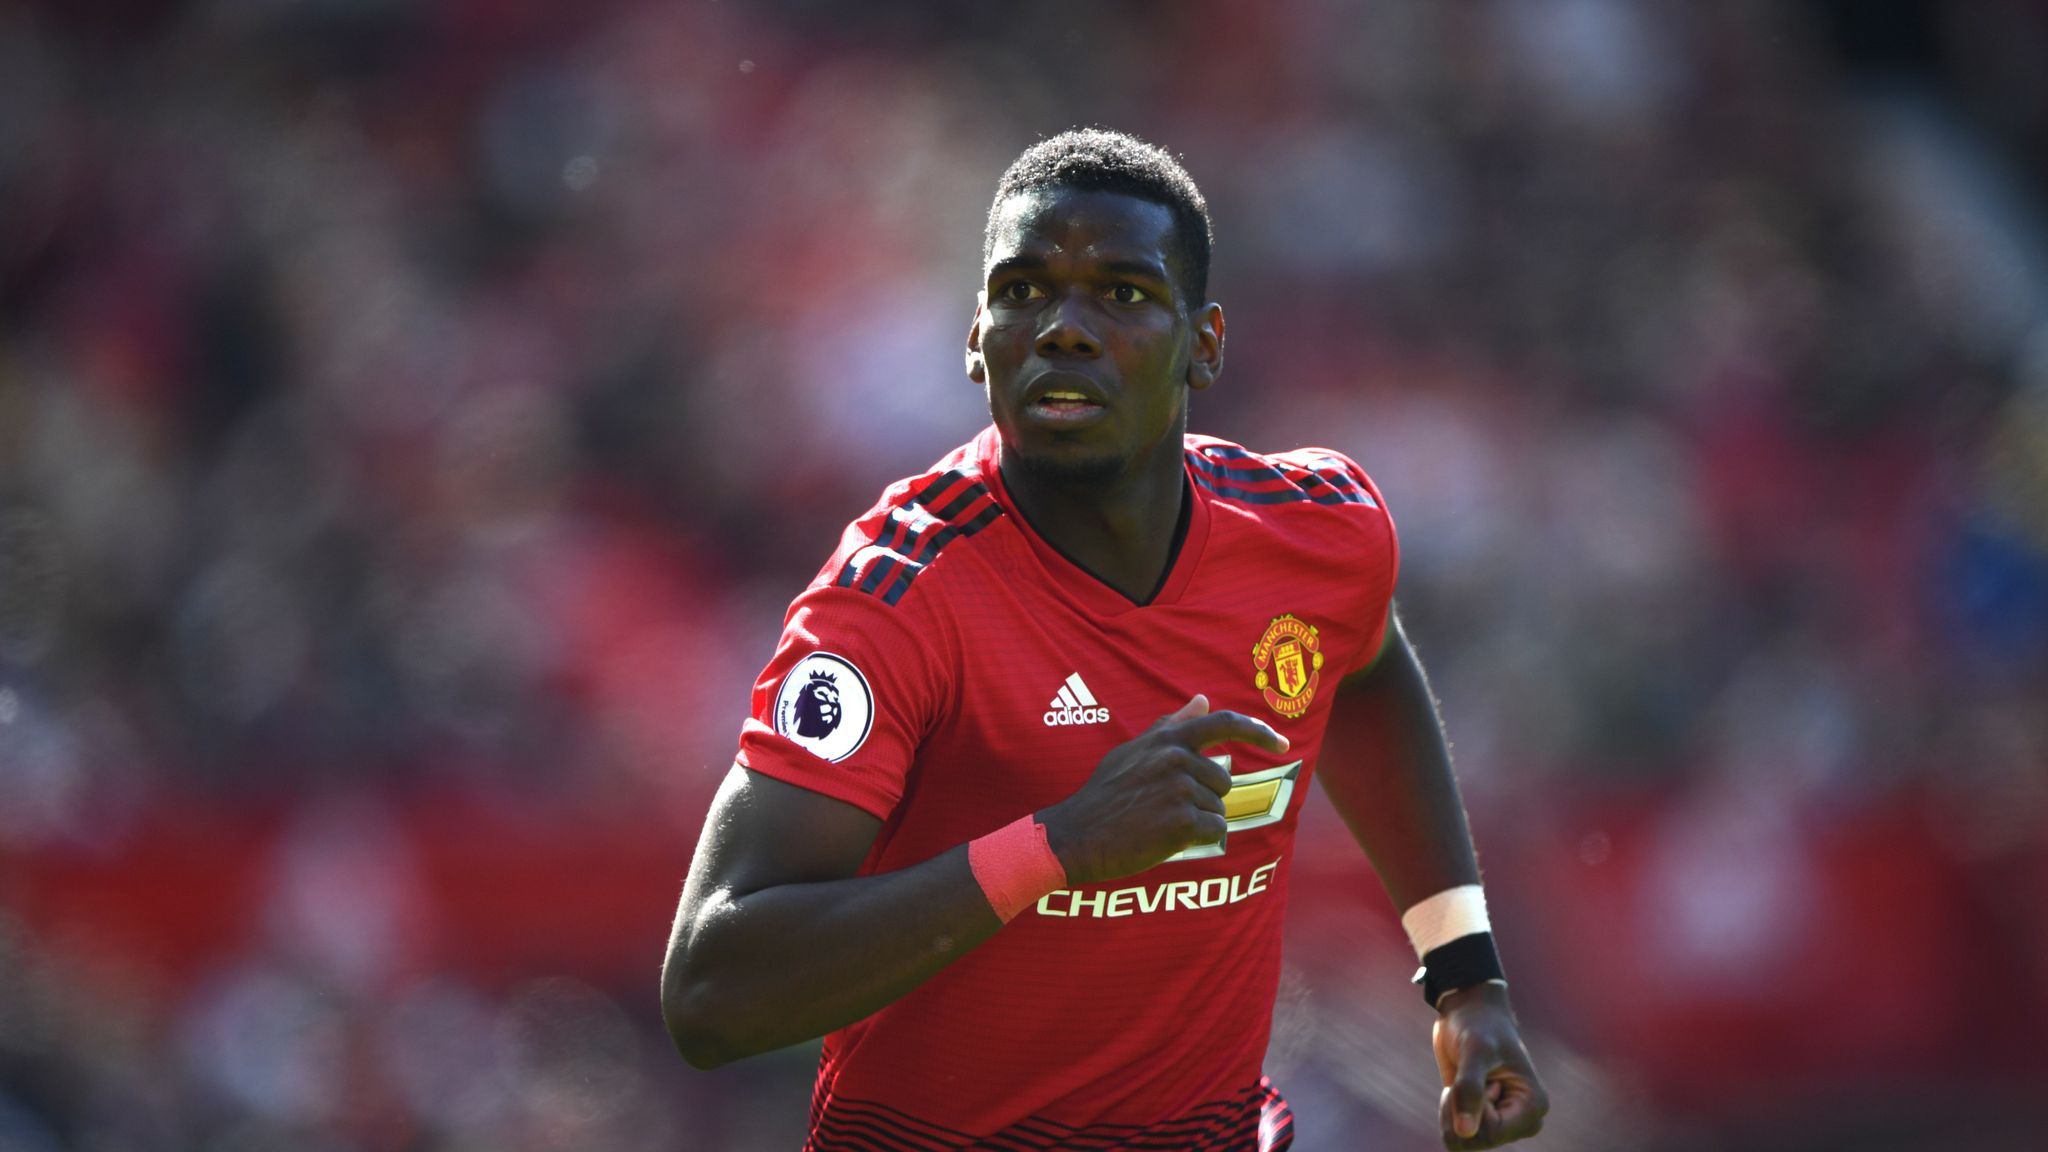 new arrivals 7d3c1 683e9 Paul Pogba: Is he really set to leave Manchester United ...